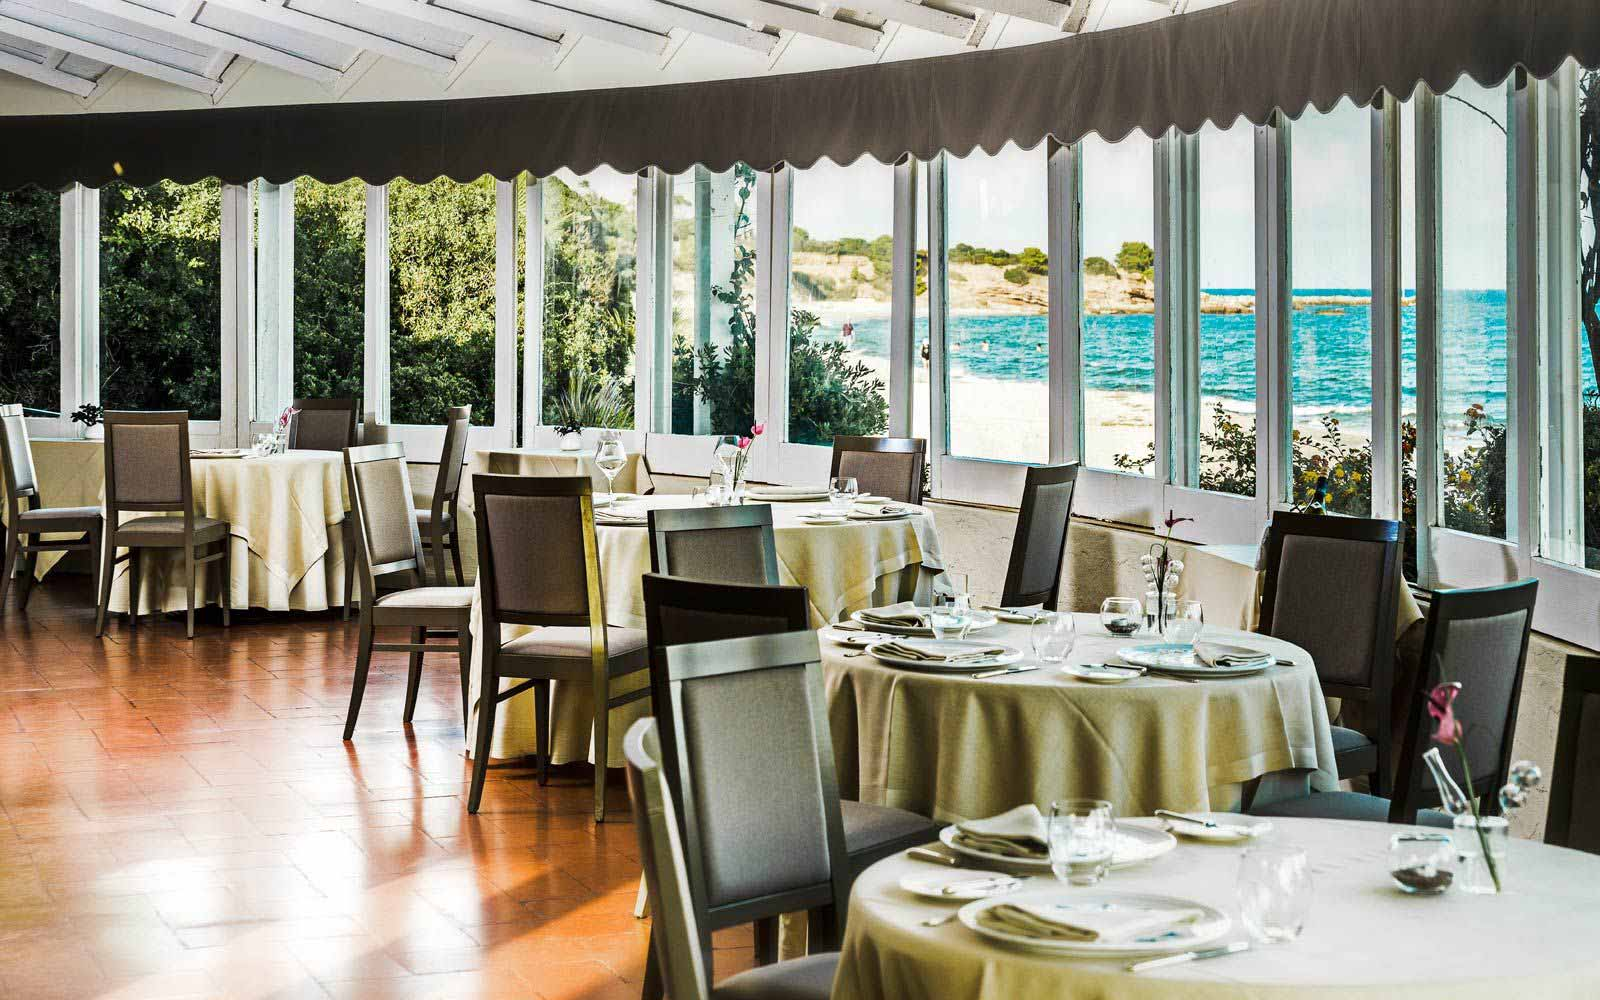 Le Dune Restaurant at Forte Village Resort